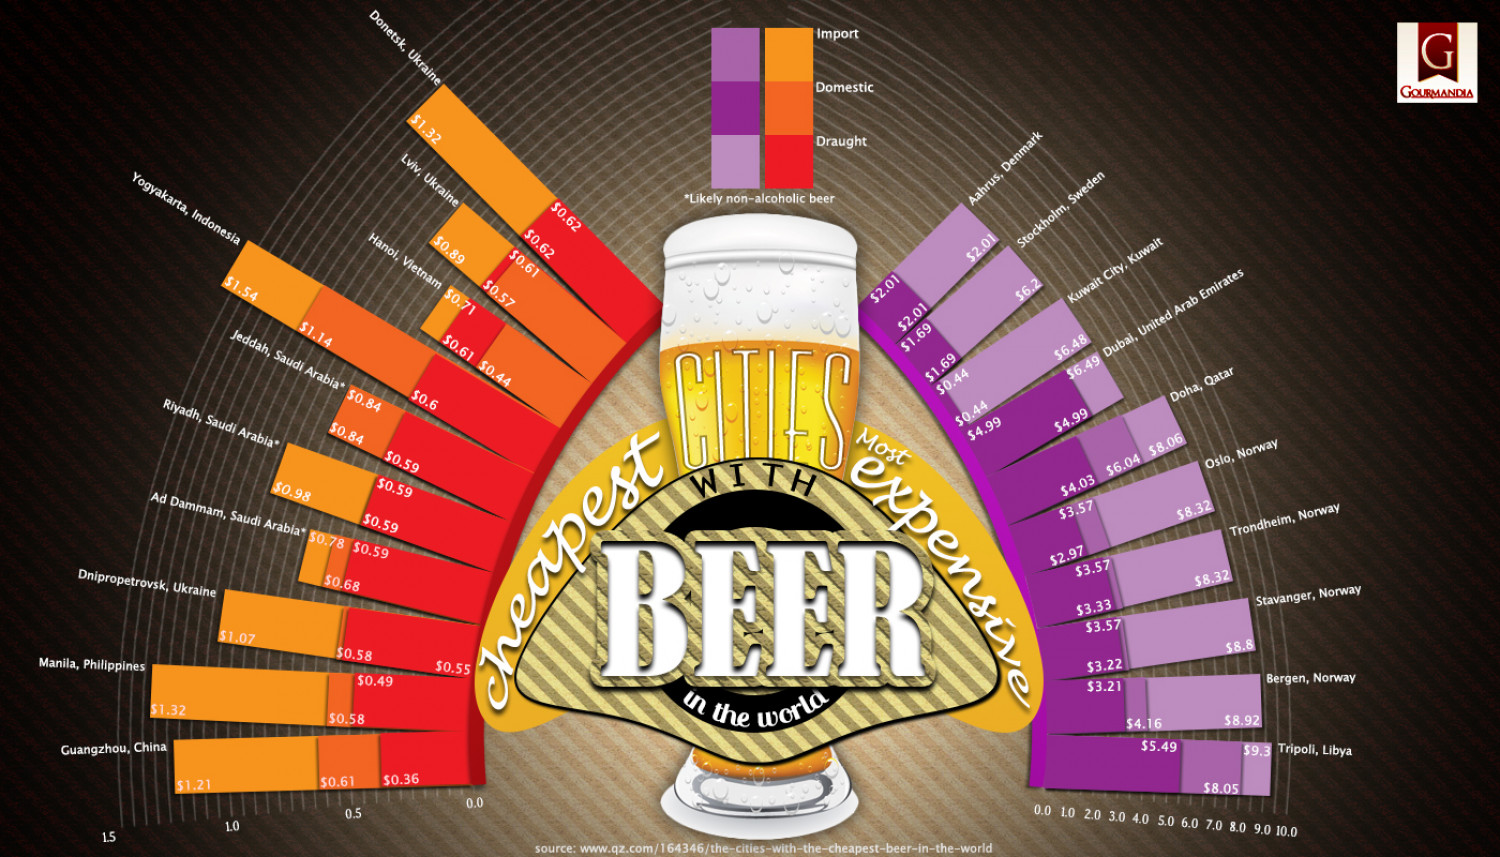 Cities with the Cheapest/Most Expensive Beer in the World Infographic